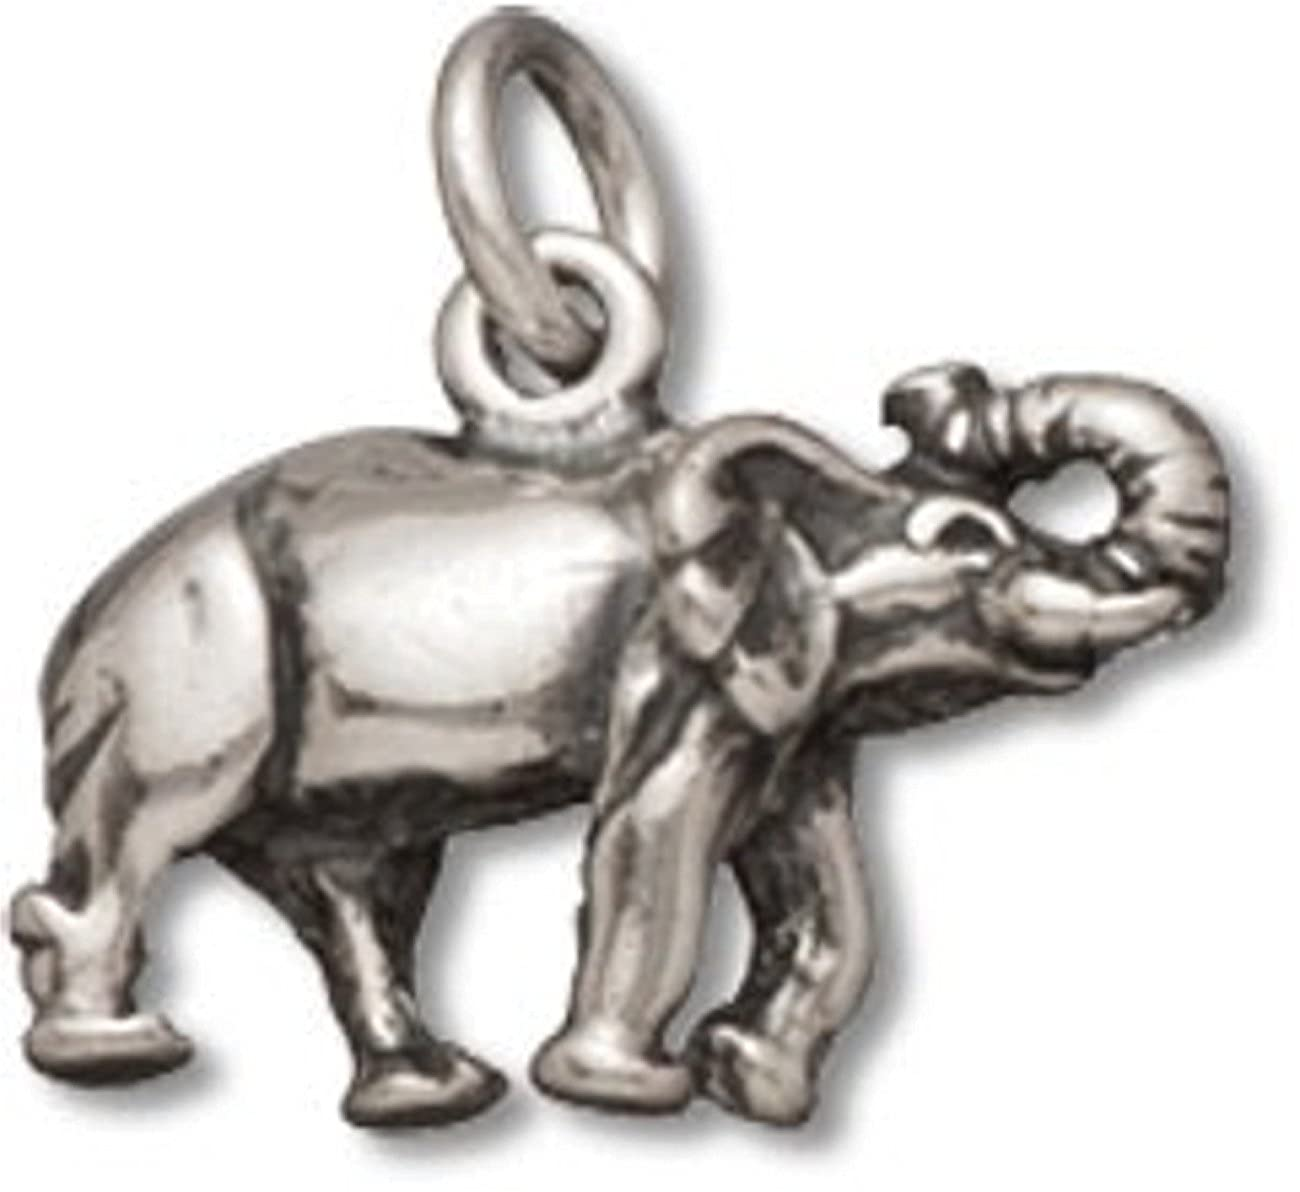 Sterling Silver 7 4.5mm Charm Bracelet With Attached 3D Walking Elephant Charm